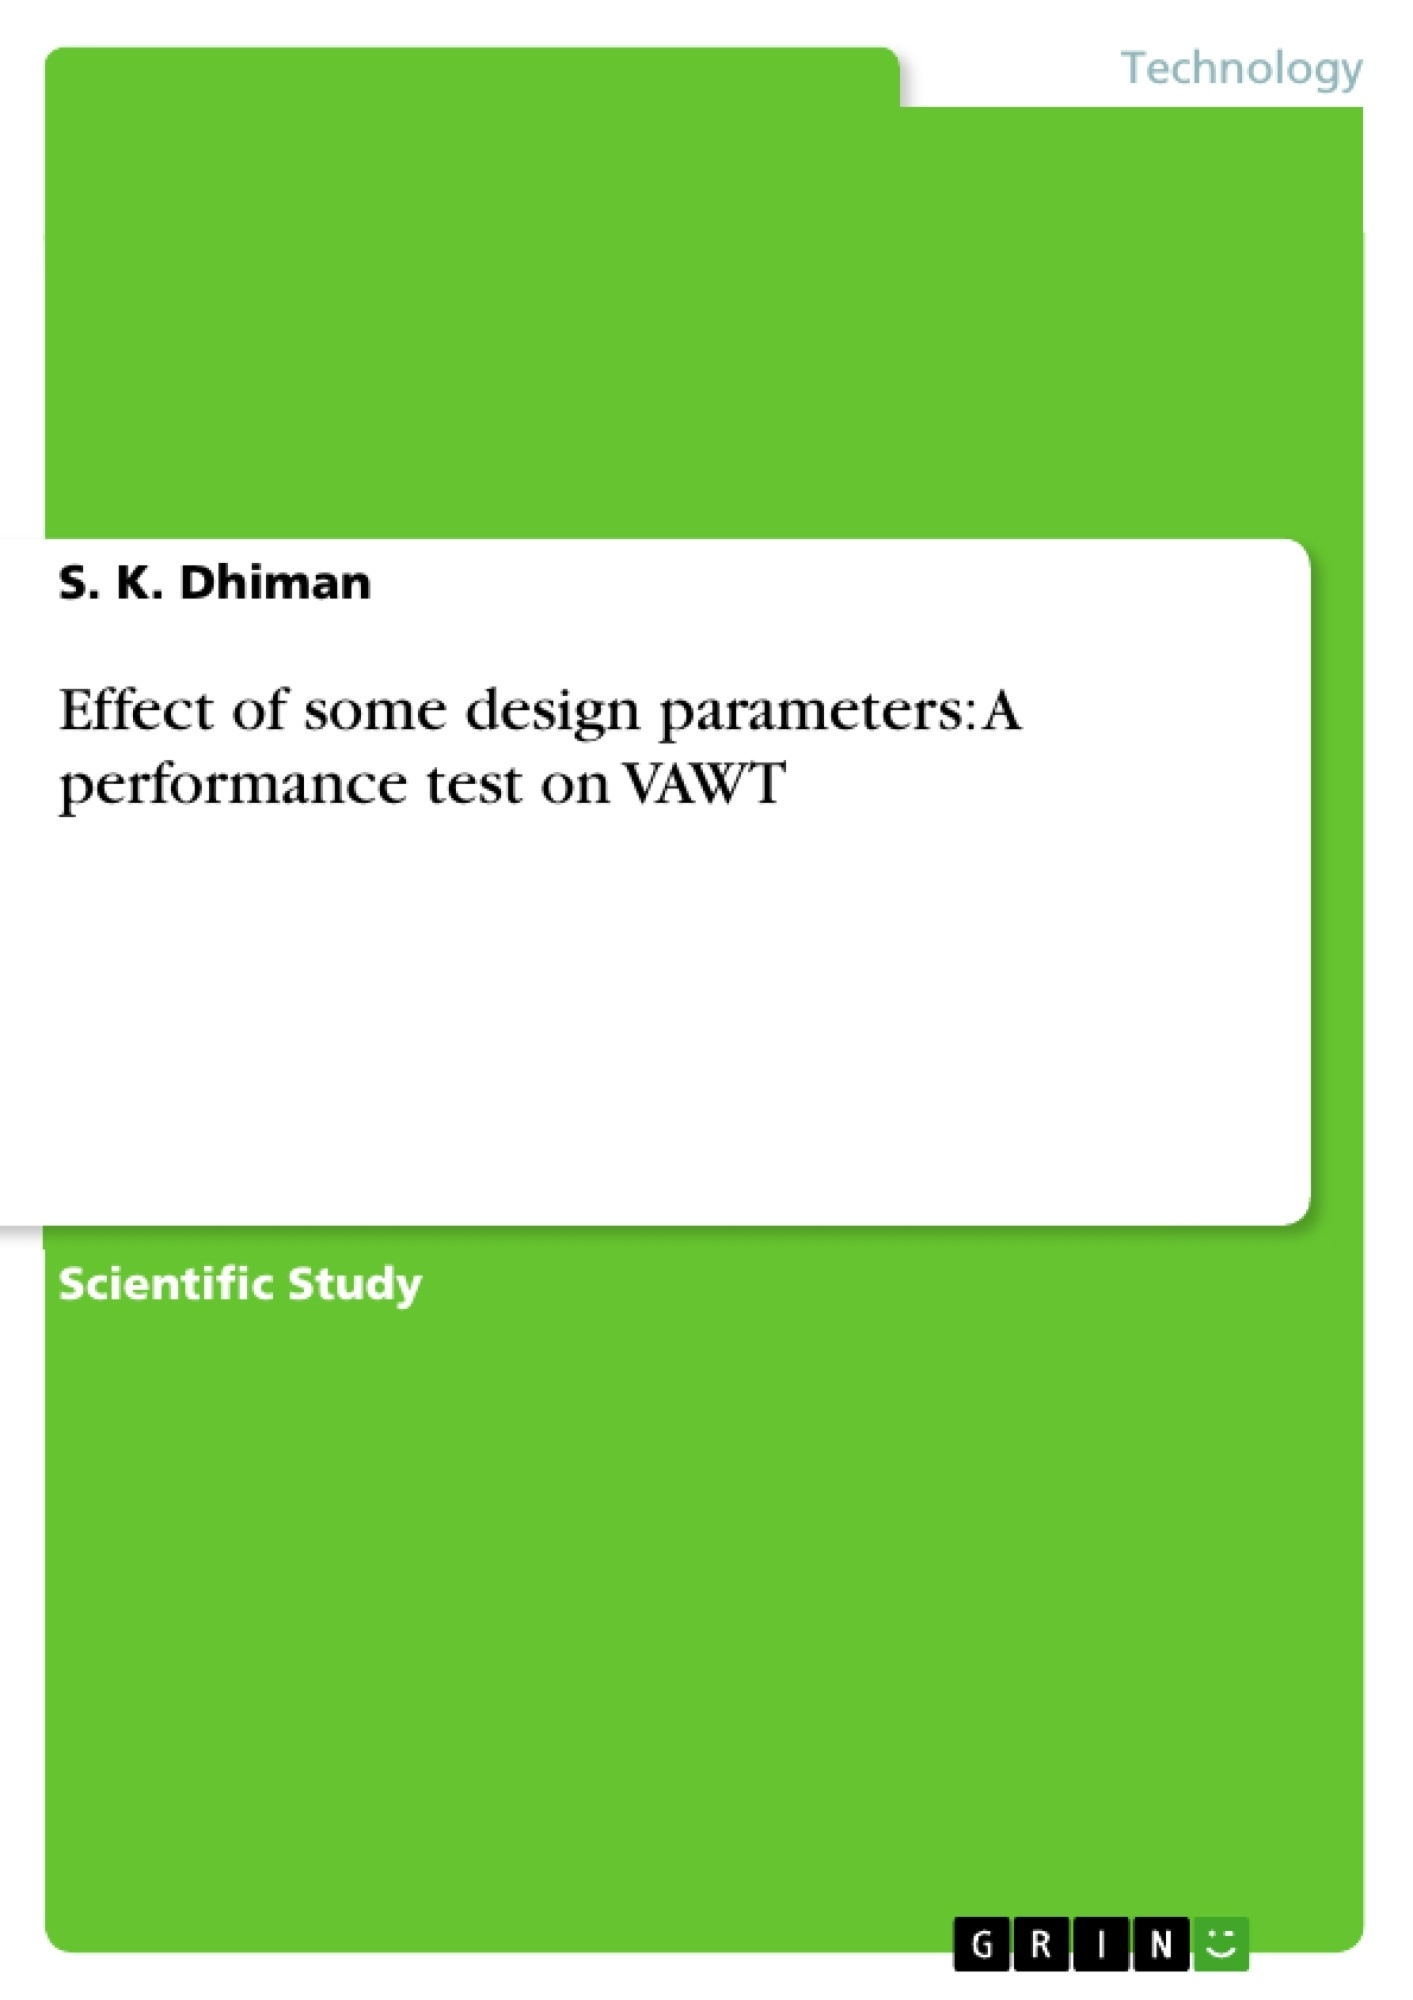 GRIN - Effect of some design parameters: A performance test on VAWT